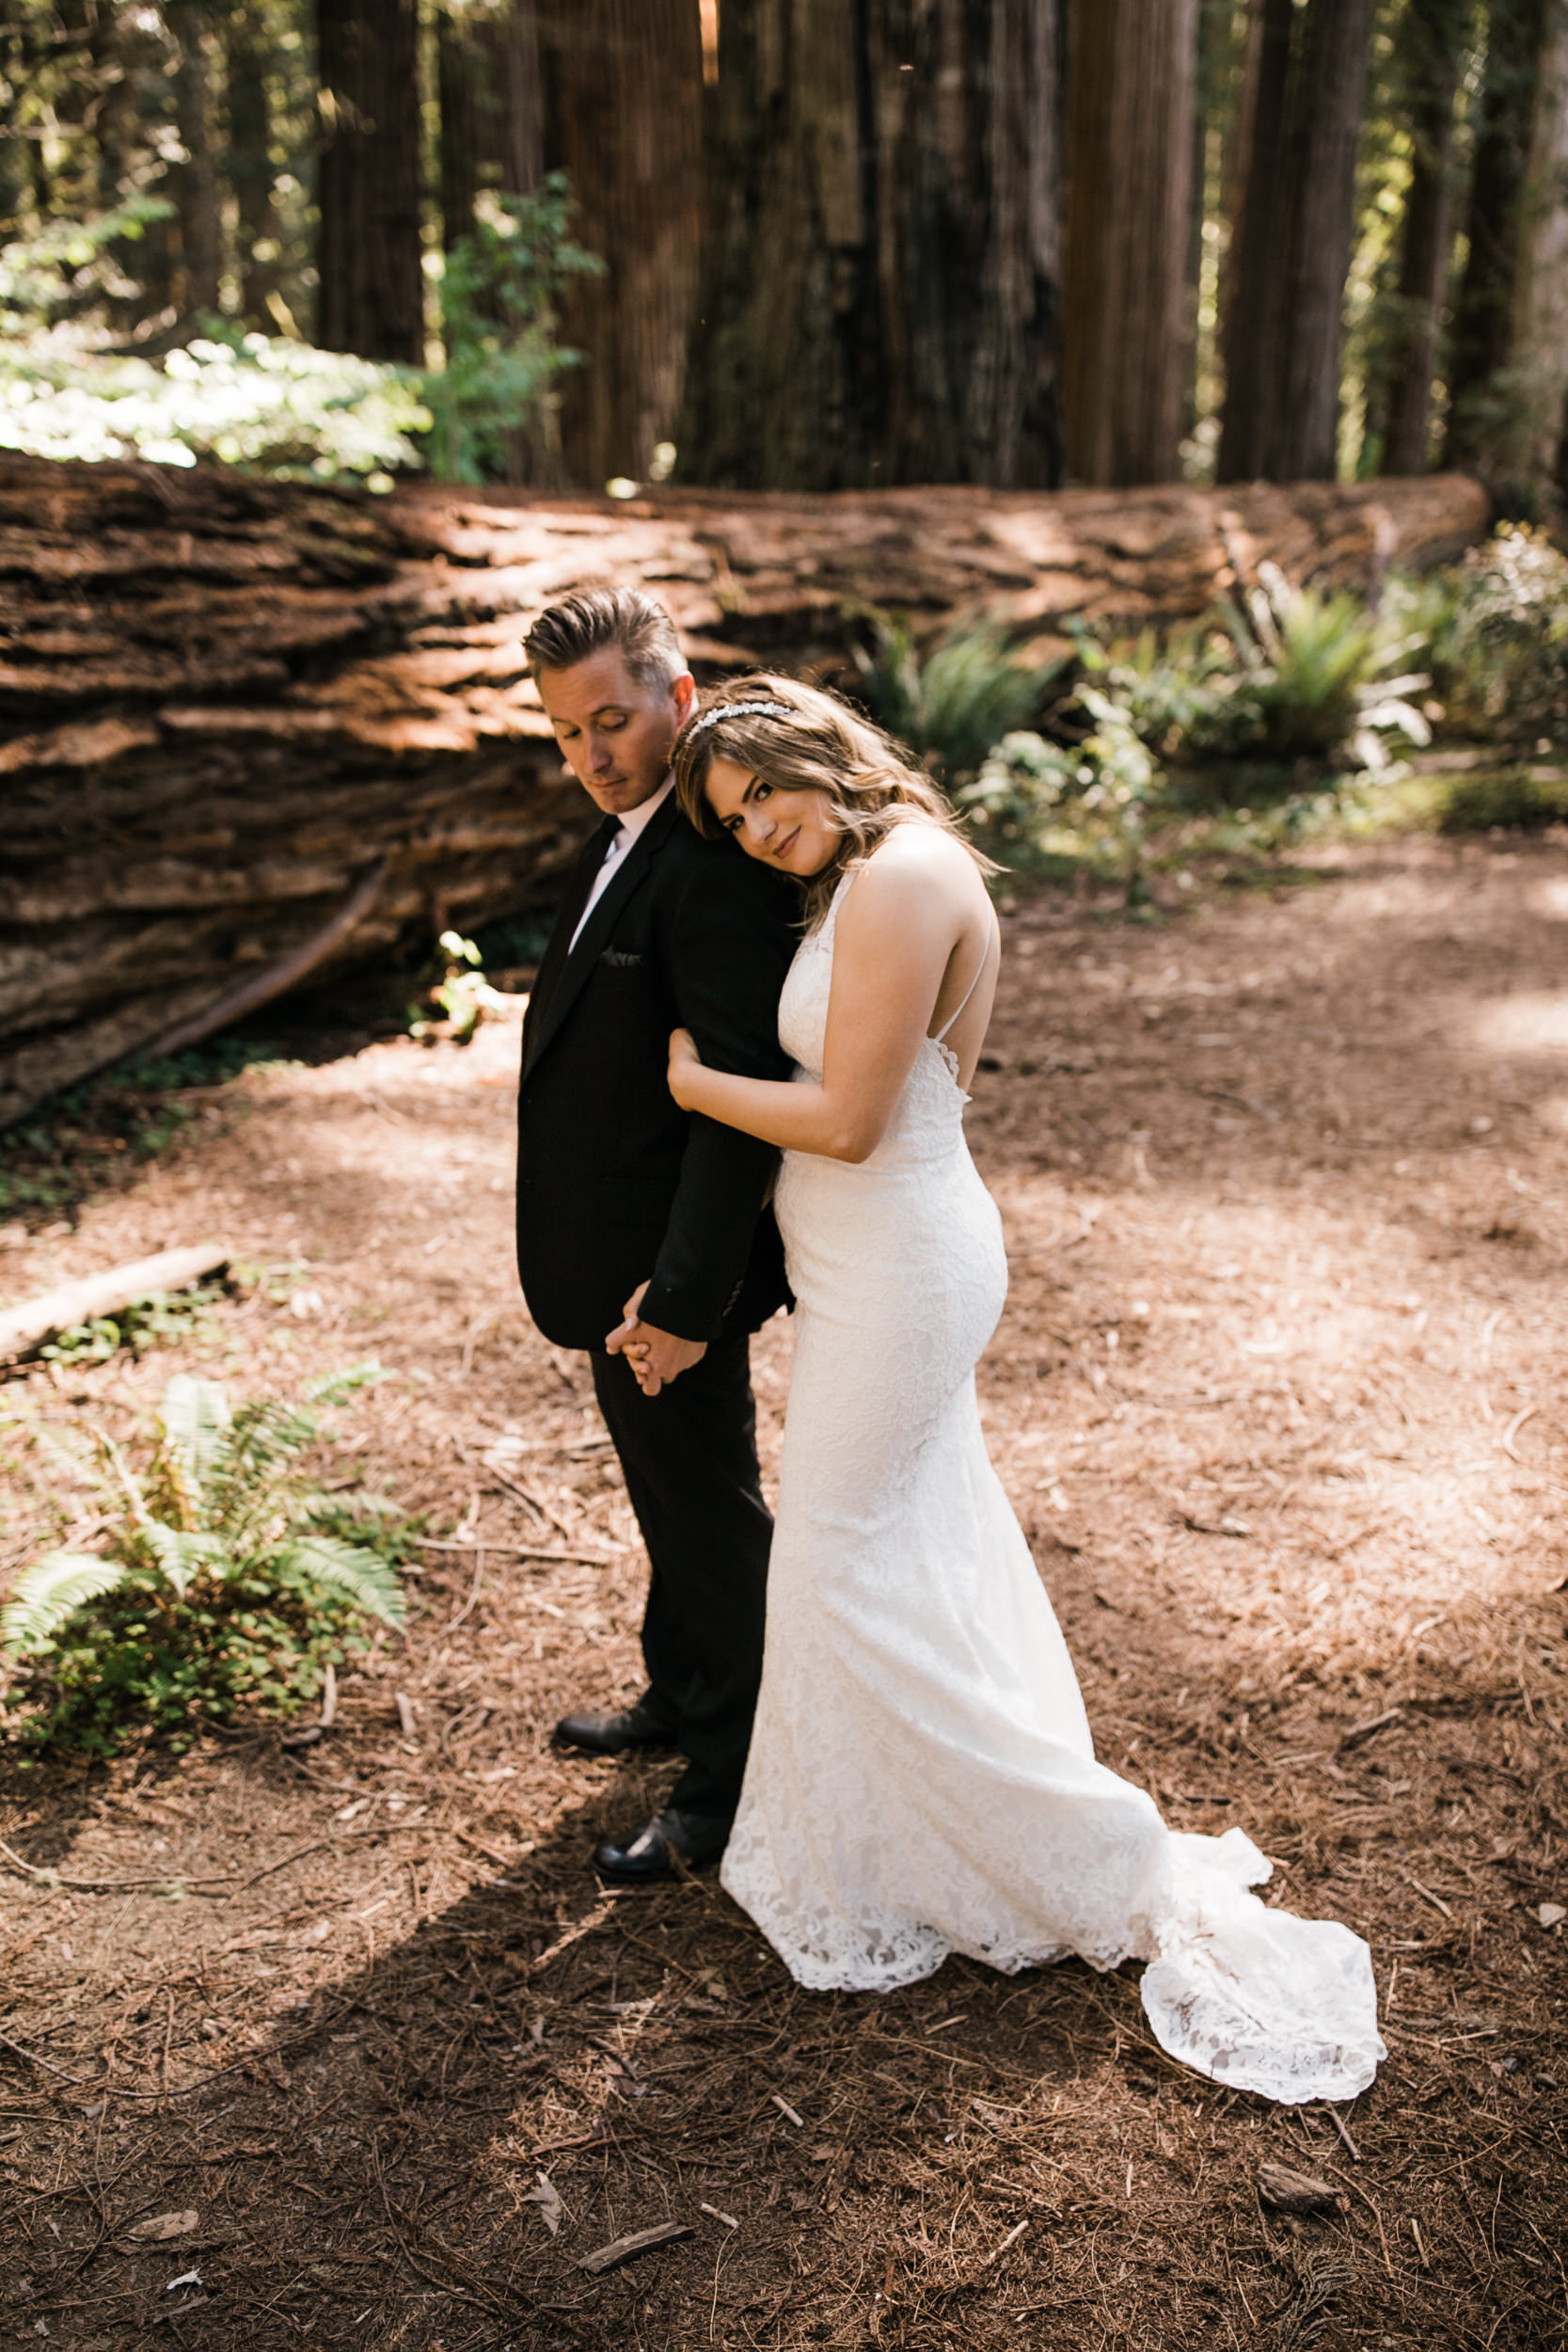 intimate wedding ceremony in the redwood forest | adventure wedding photographer | redwoods national park elopement | www.thehearnes.com